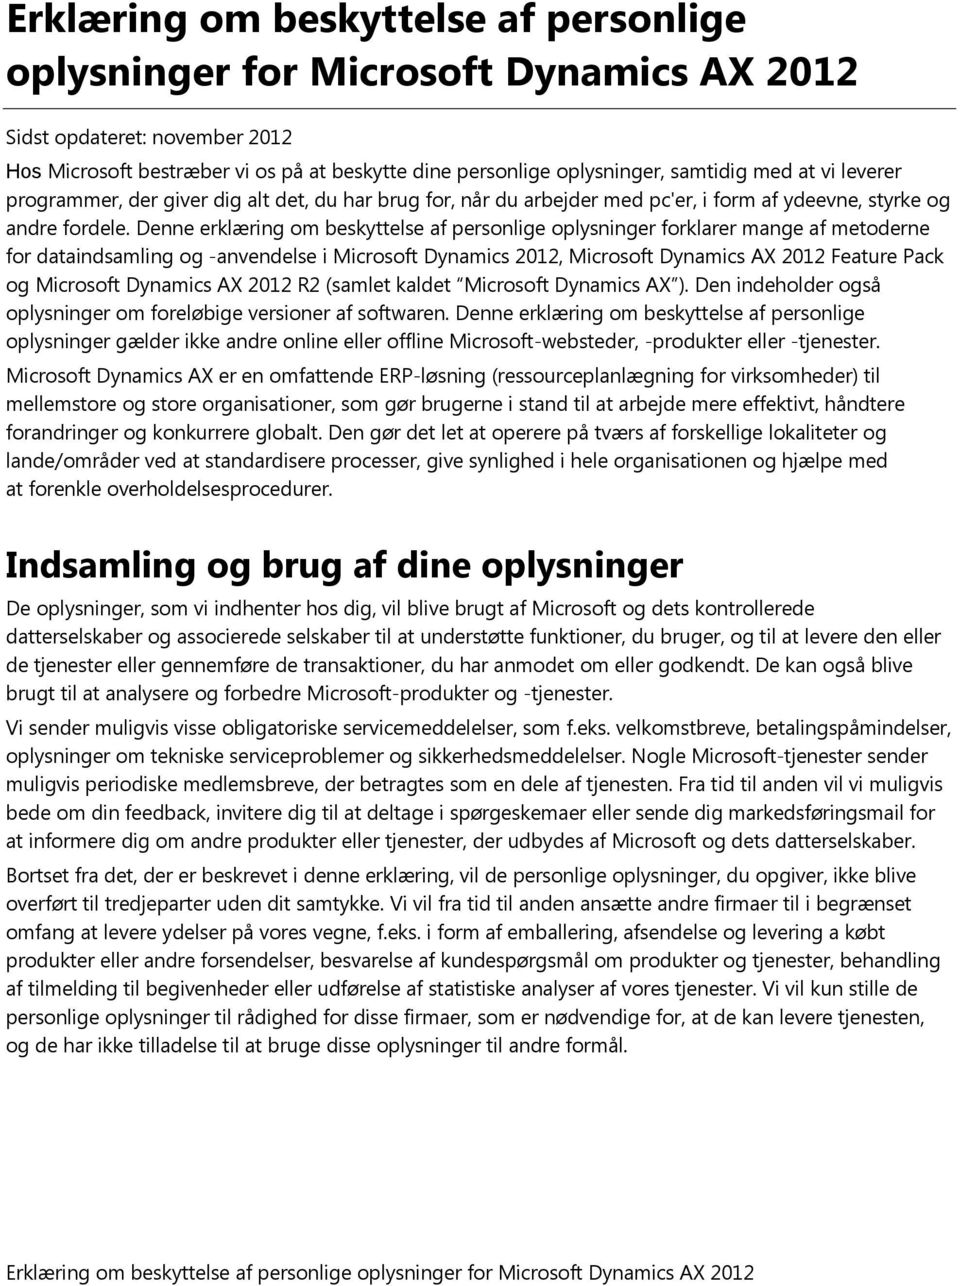 Denne erklæring om beskyttelse af personlige oplysninger forklarer mange af metoderne for dataindsamling og -anvendelse i Microsoft Dynamics 2012, Microsoft Dynamics AX 2012 Feature Pack og Microsoft